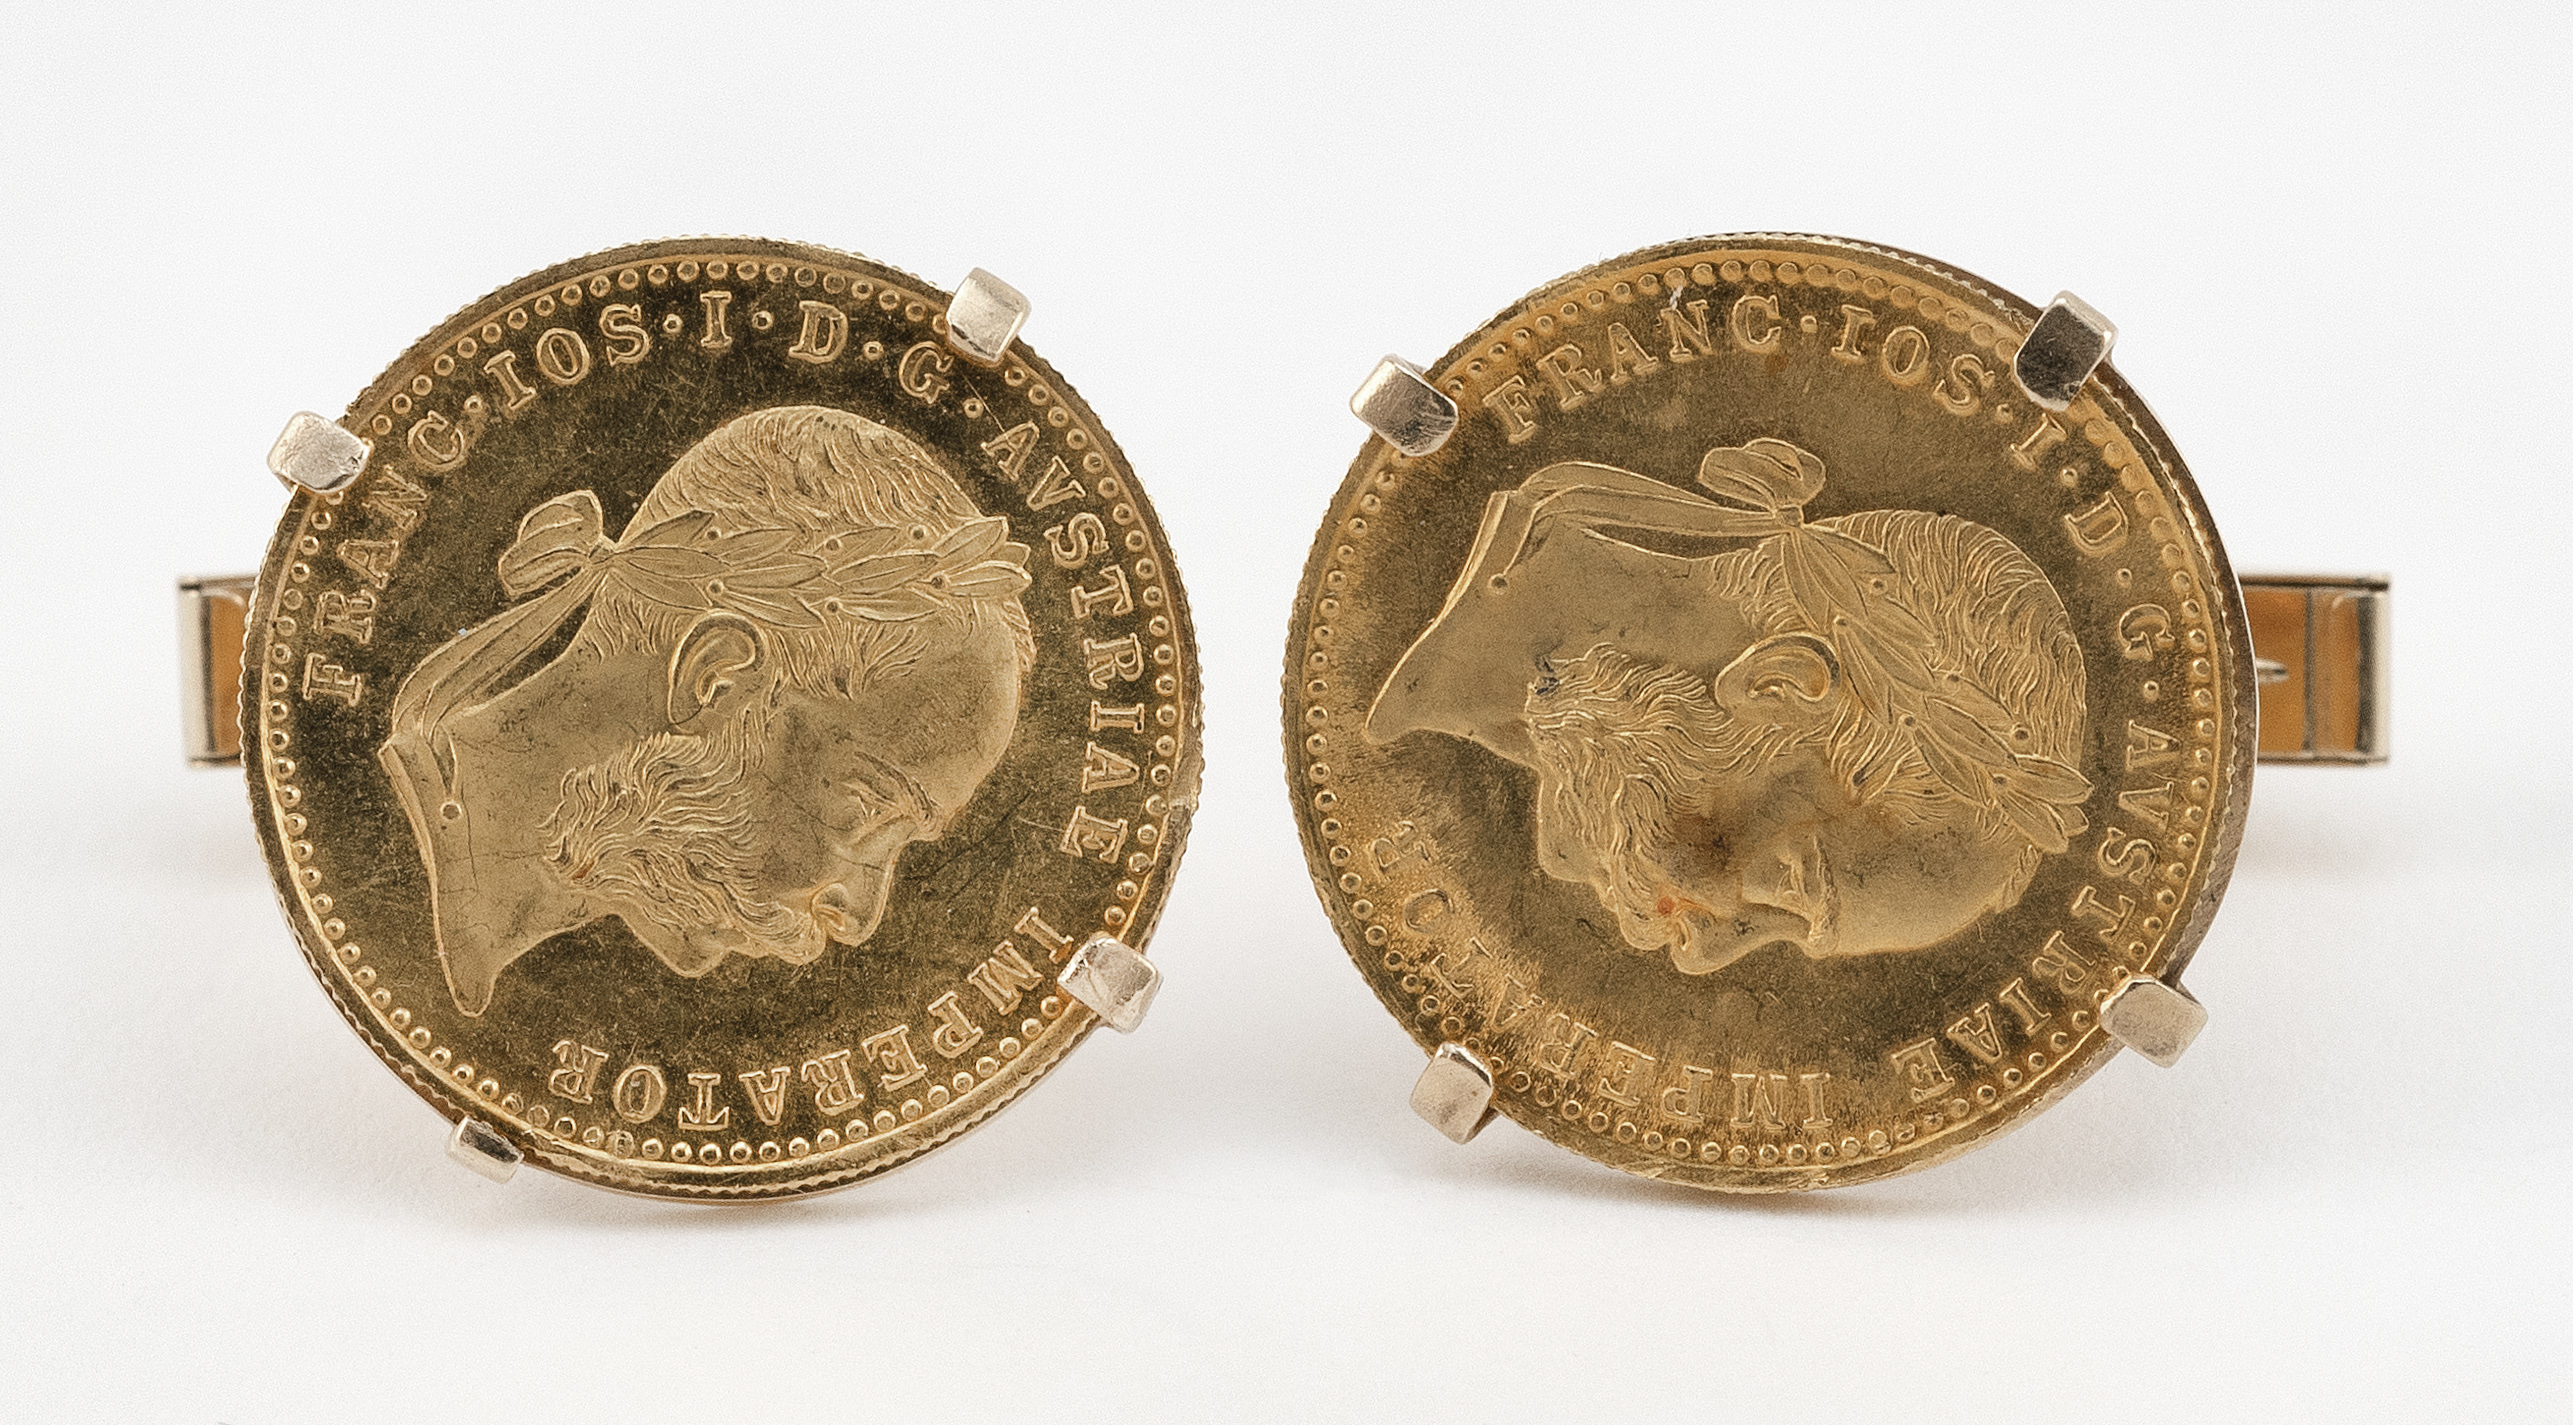 PAIR OF AUSTRIAN DUCAT GOLD COIN AND 14KT GOLD CUFF LINKS Approx. 8.27 total dwt.